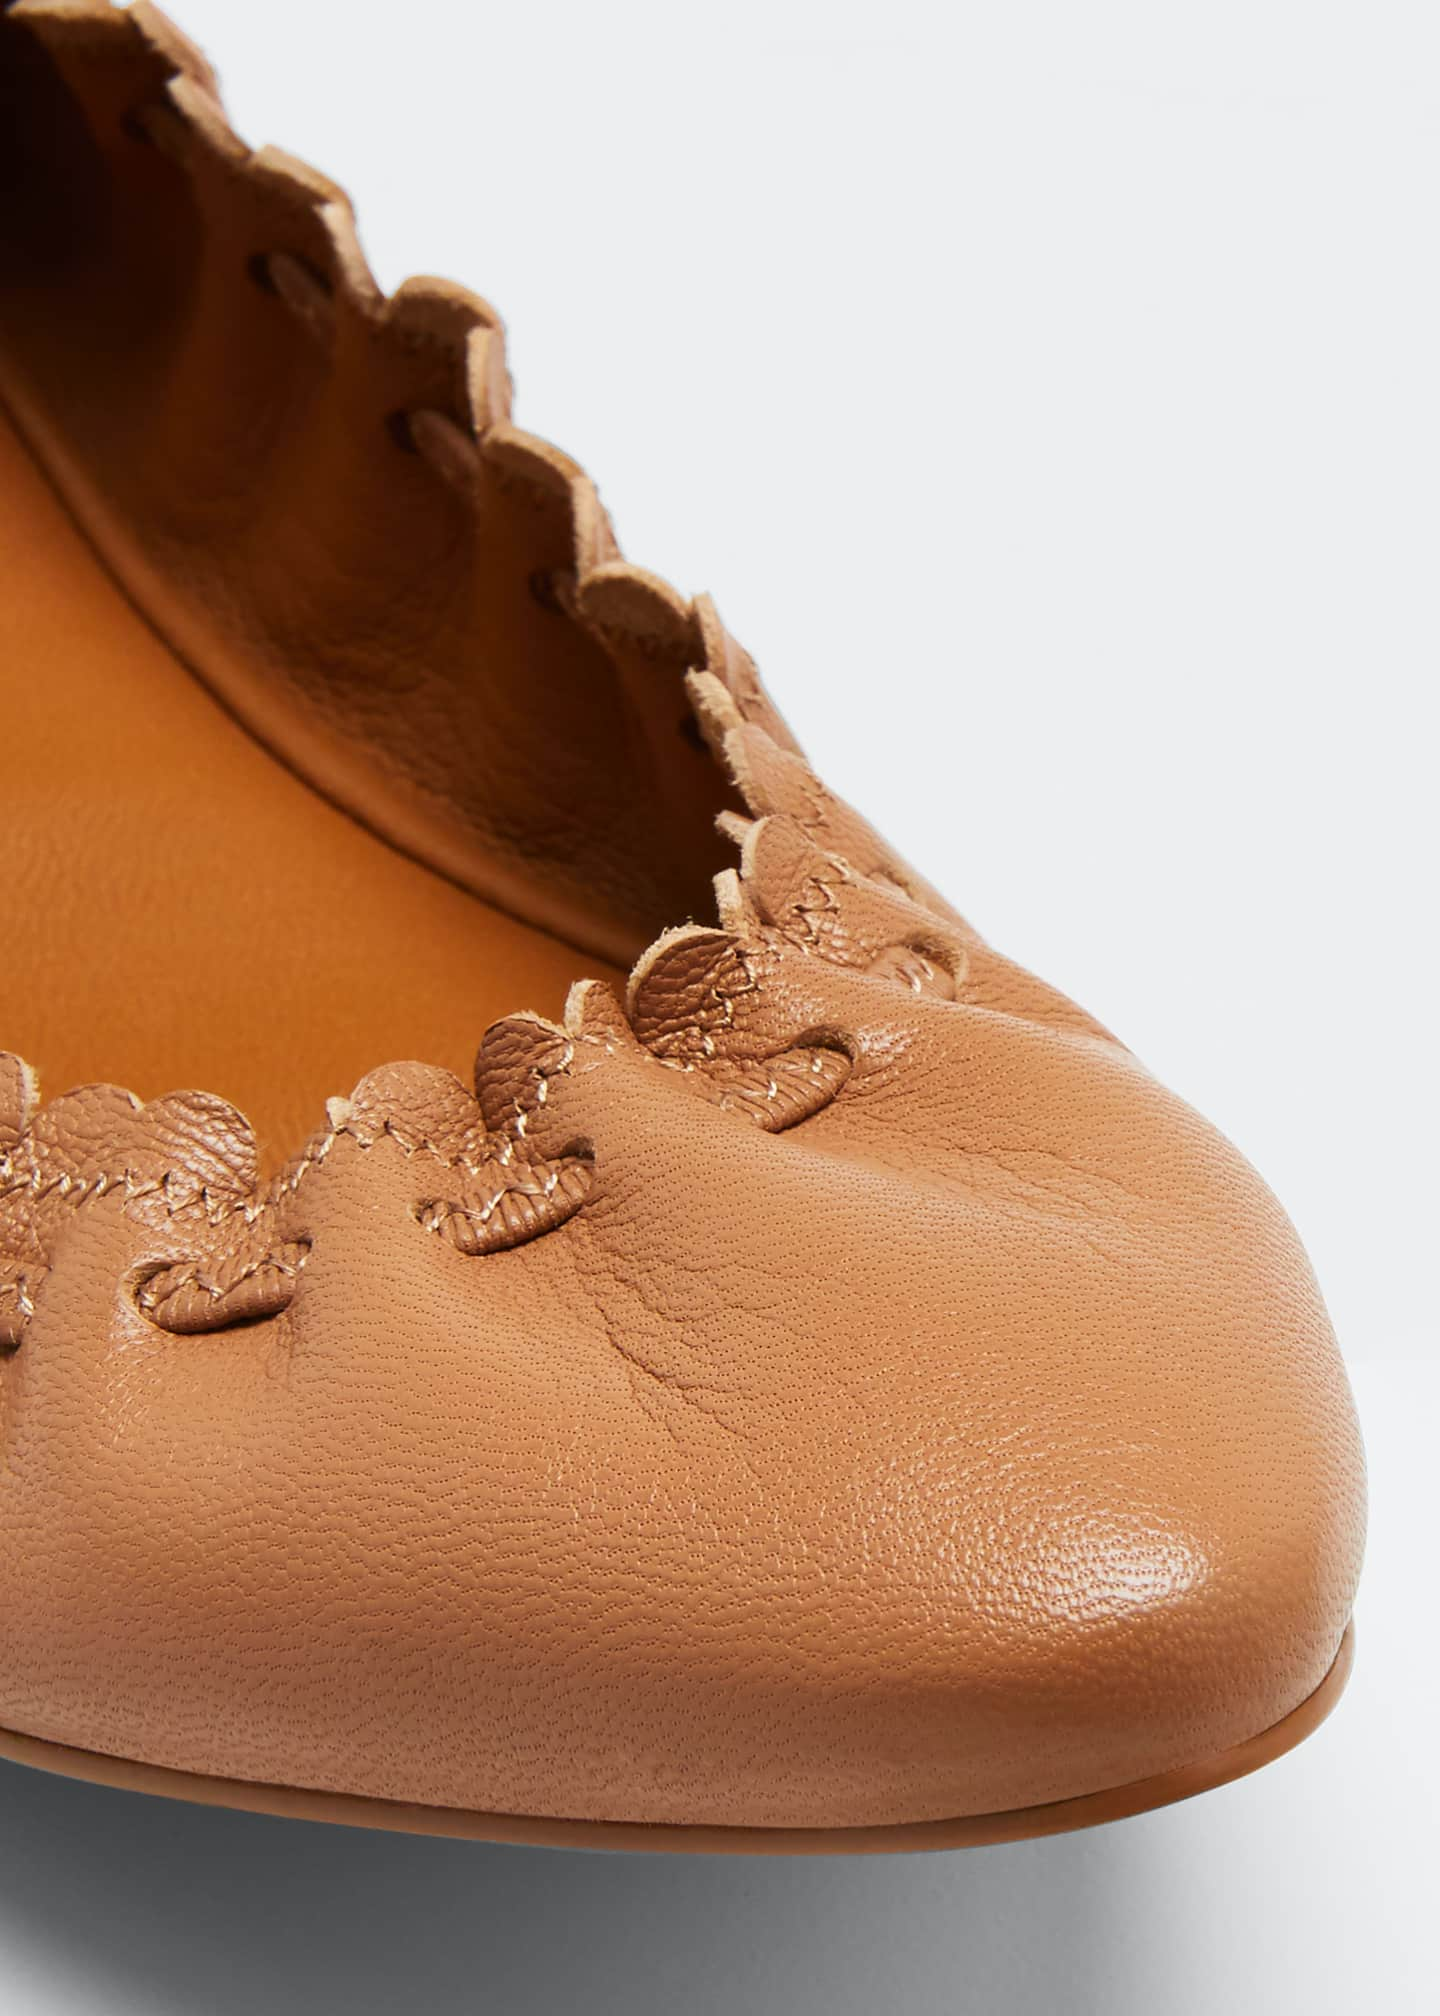 Image 5 of 5: Rex Goat Biscotto Scalloped Flats, Beige